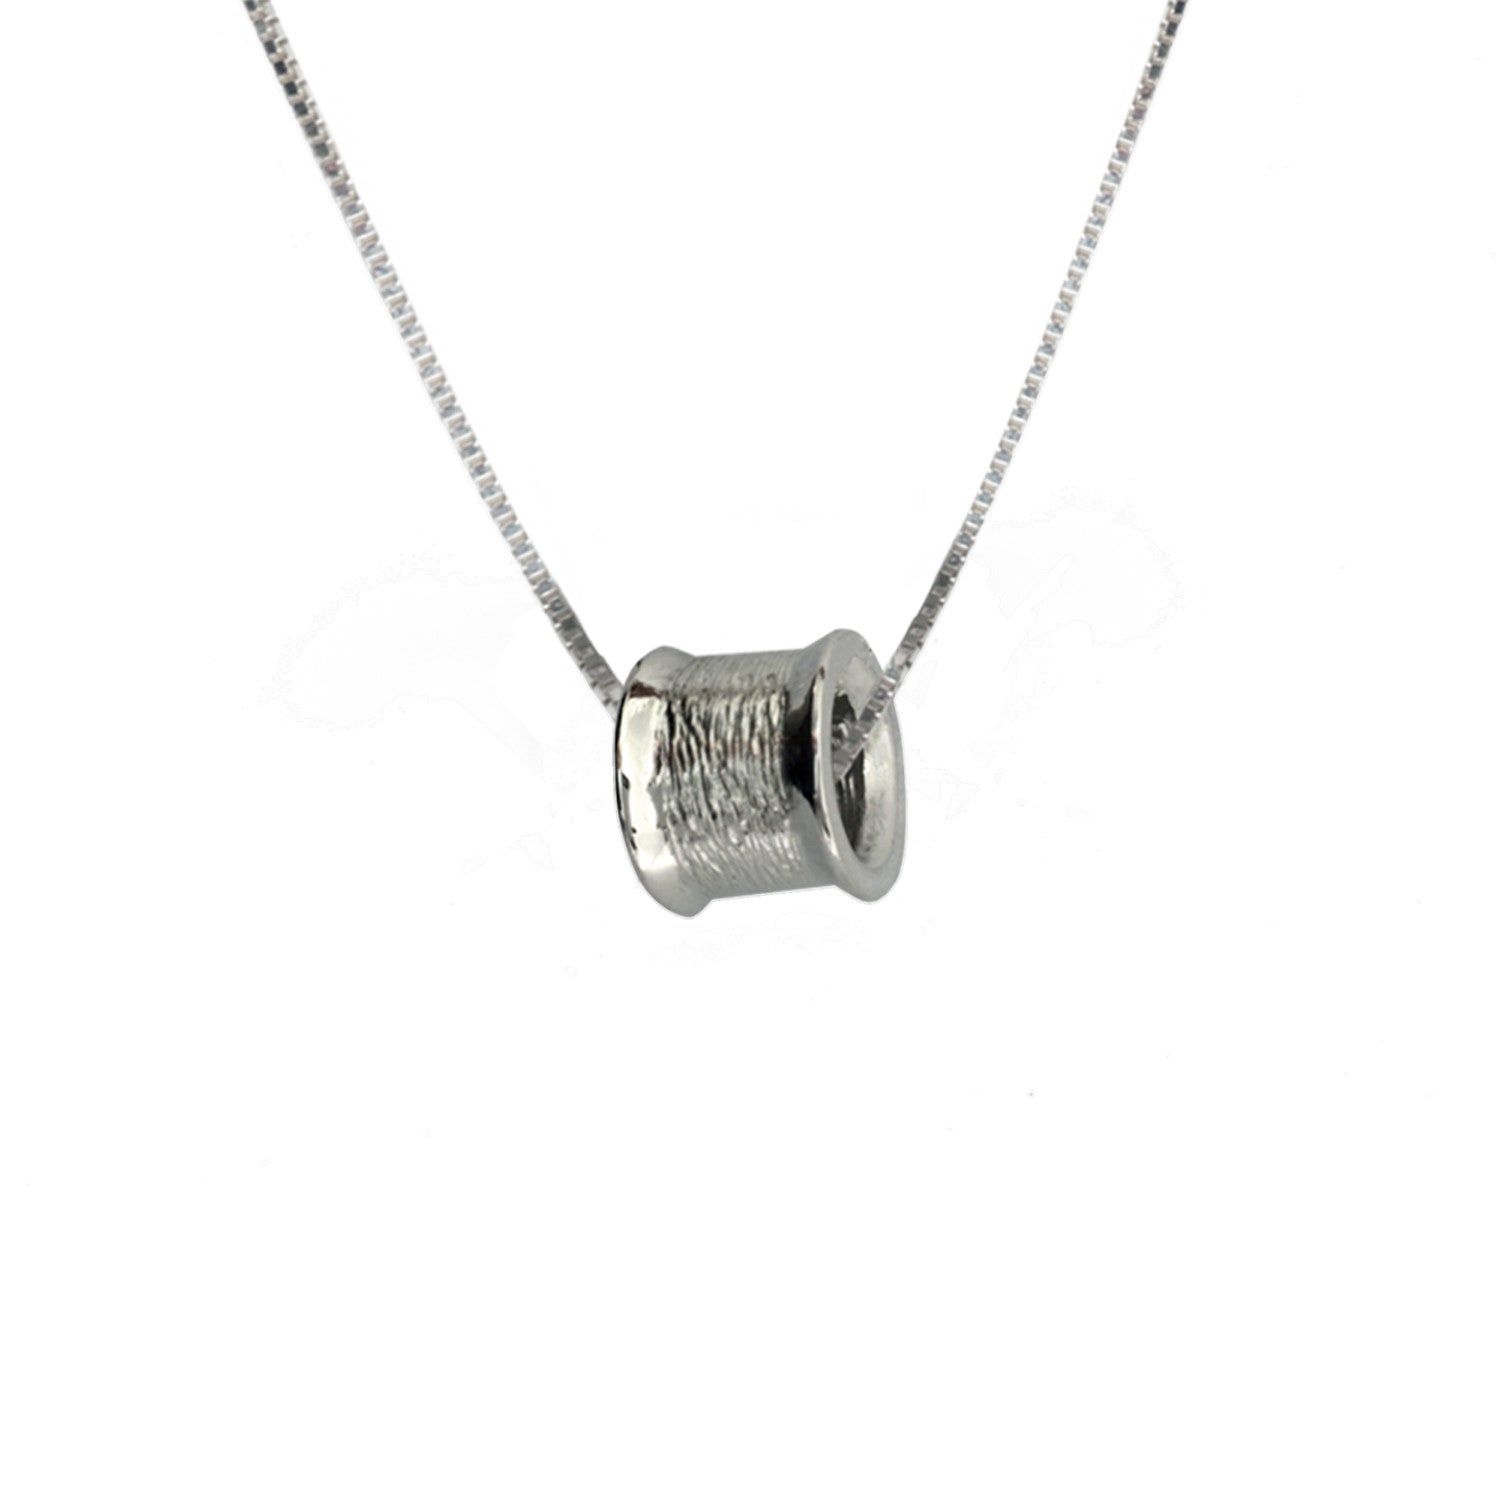 washer oodlique product silver personalised necklace com sterling